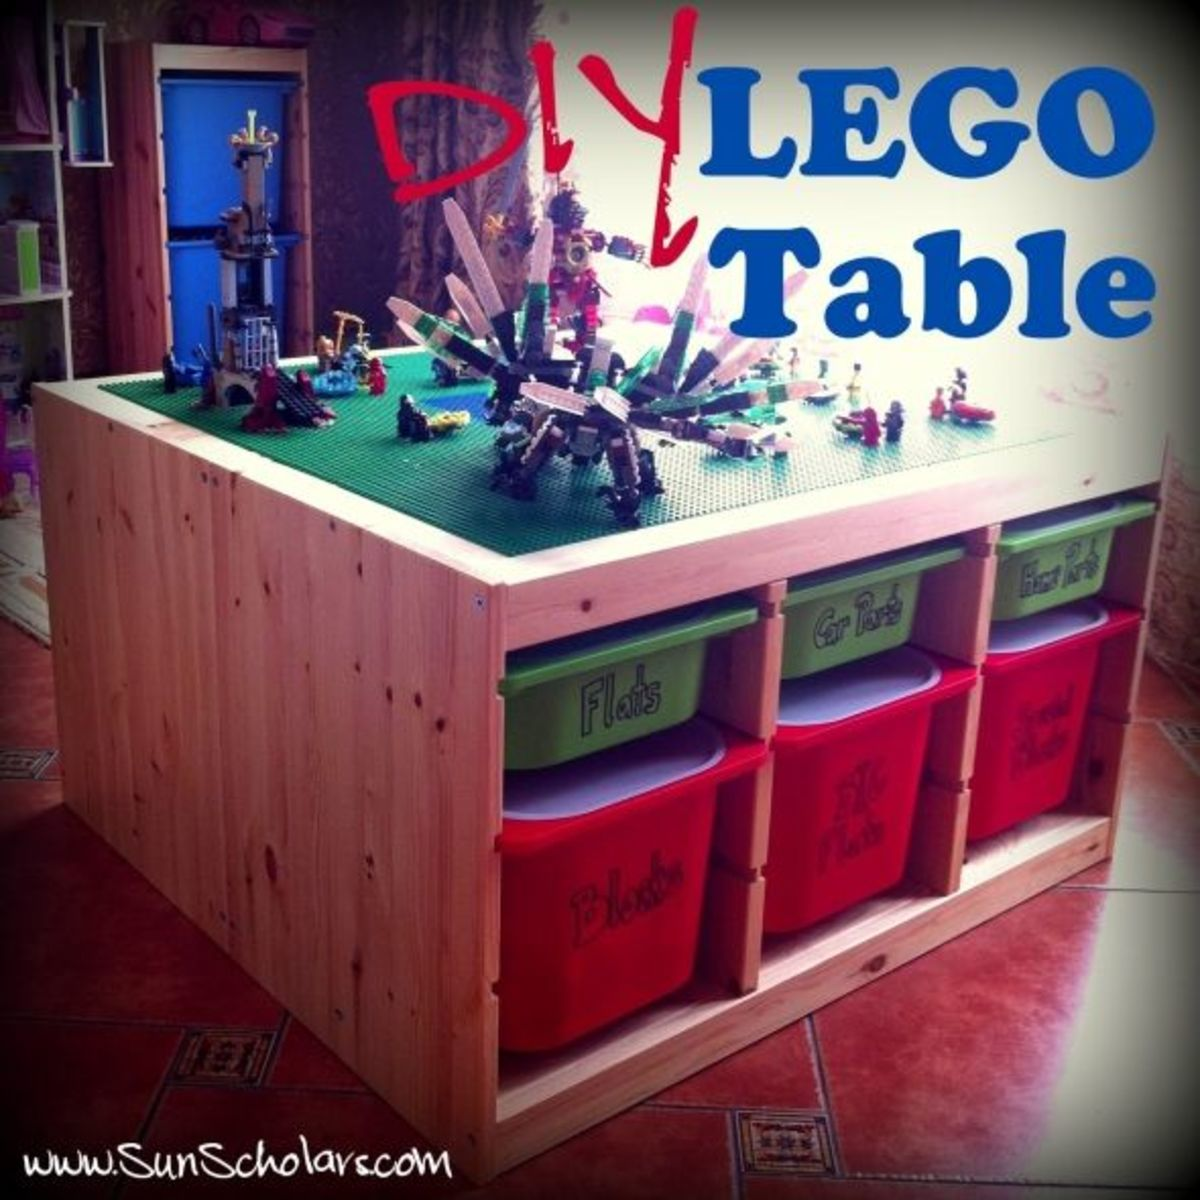 This DIY Lego Table created by www.sunscholars.com was made using pieces bought from Ikea. It is the Trofast line combined together to create this AWESOME set up.